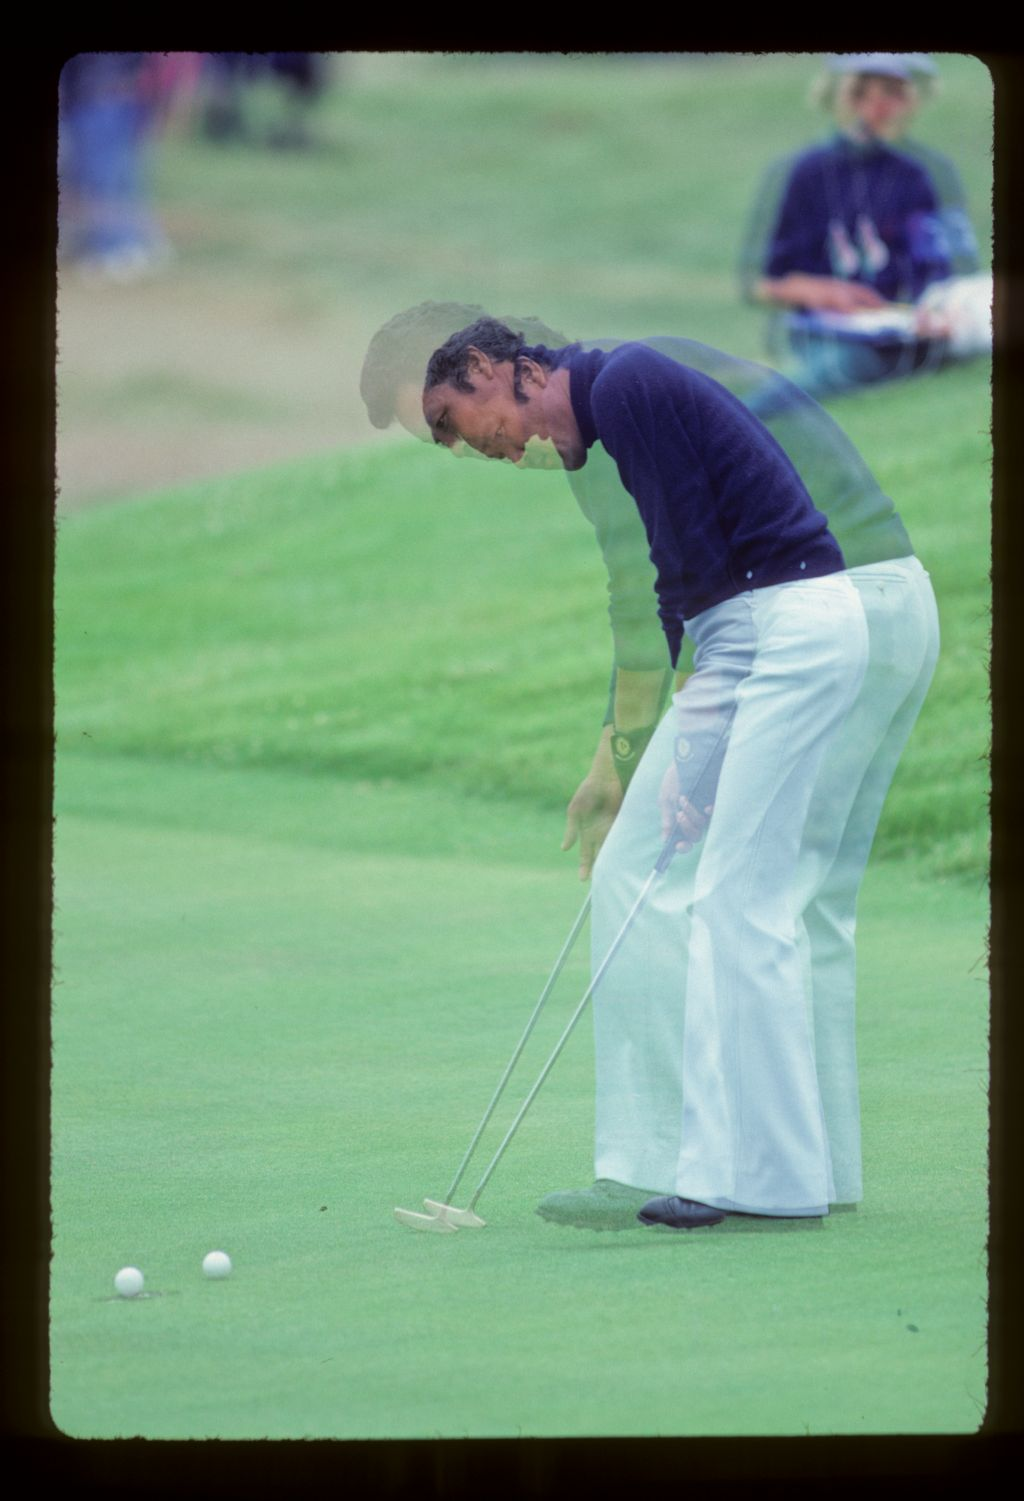 A double exposure of Isao Aoki sinking a putt during the 1980 Open Championship